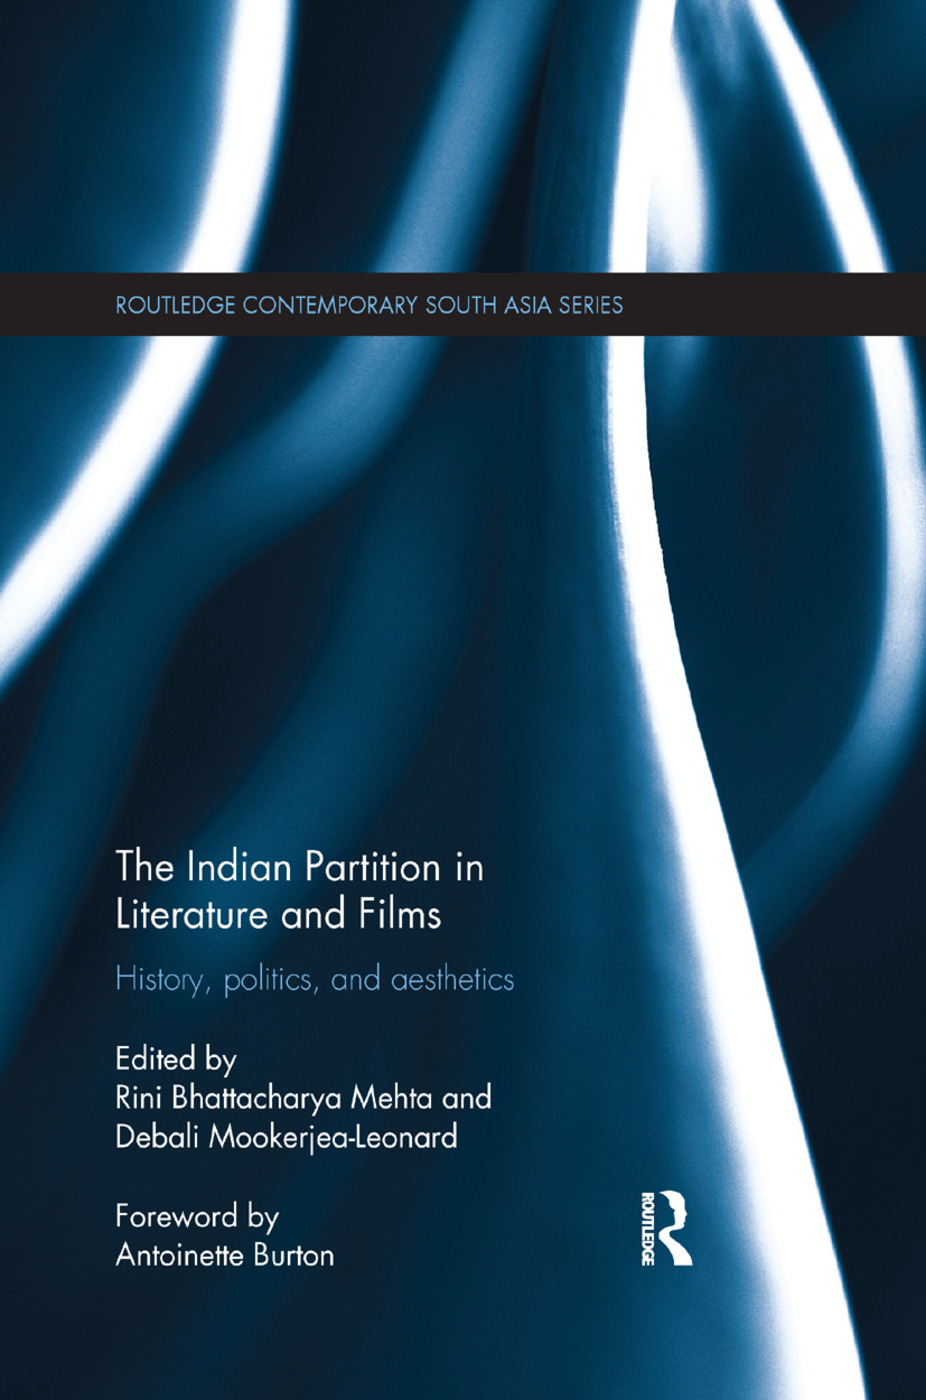 The Indian Partition in Literature and Films: History, Politics, and Aesthetics book cover